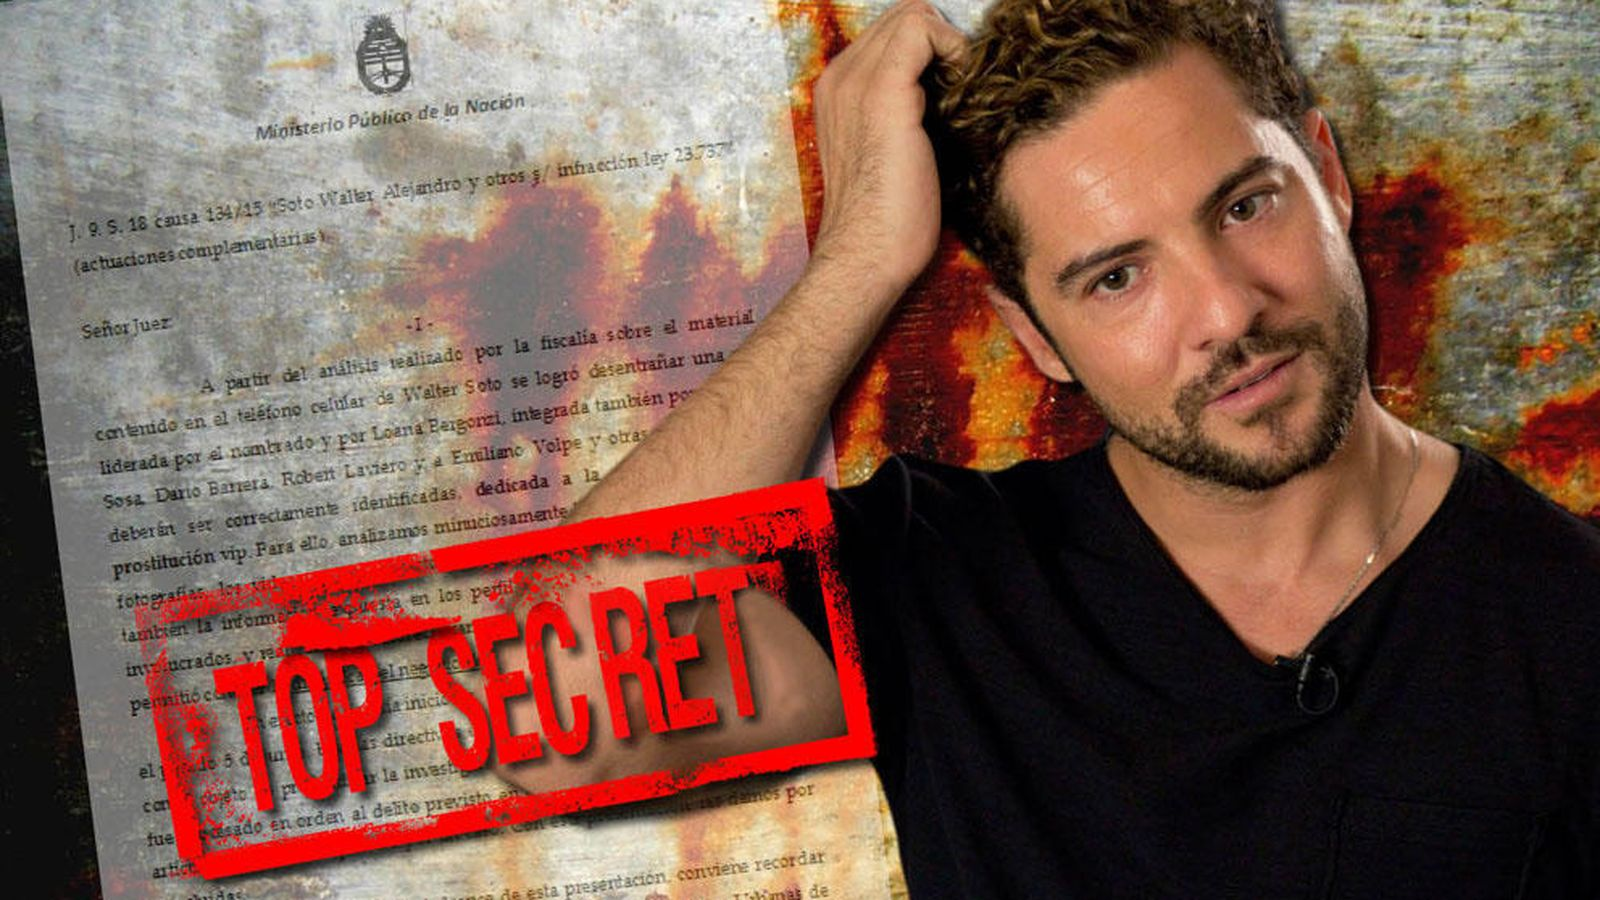 david bisbal prostitutas videos prostitutas reales